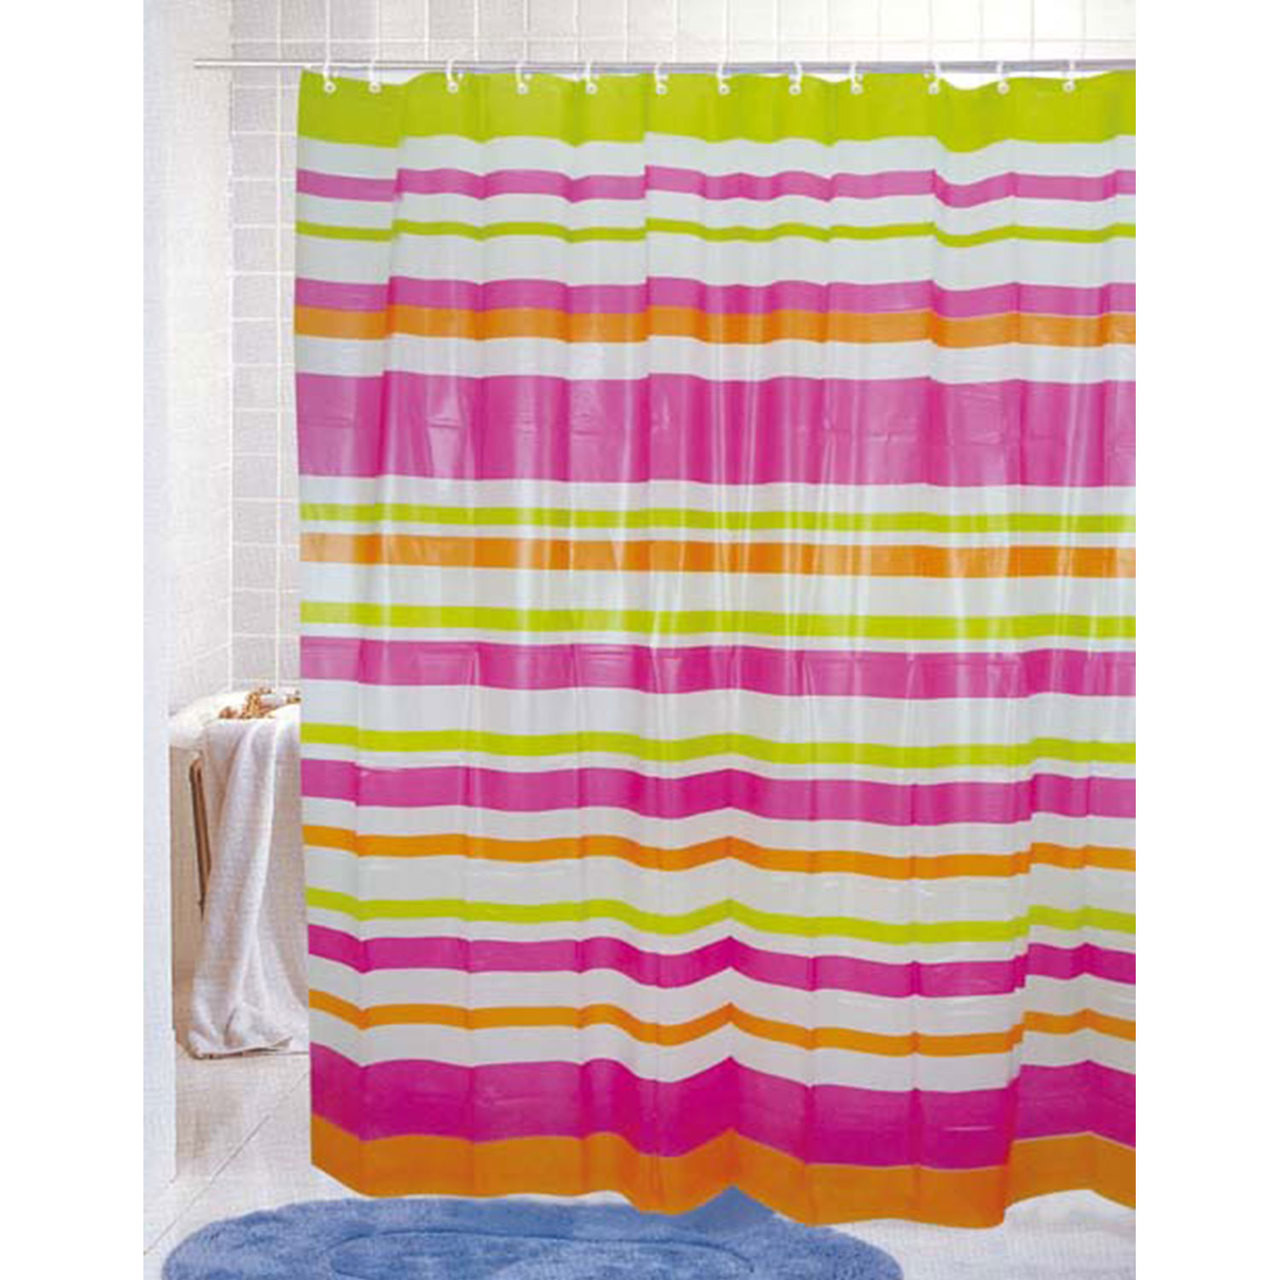 Pvc Free Peva Printed Shower Curtain Colorful Strata Stripes Print 70x72 Maggie